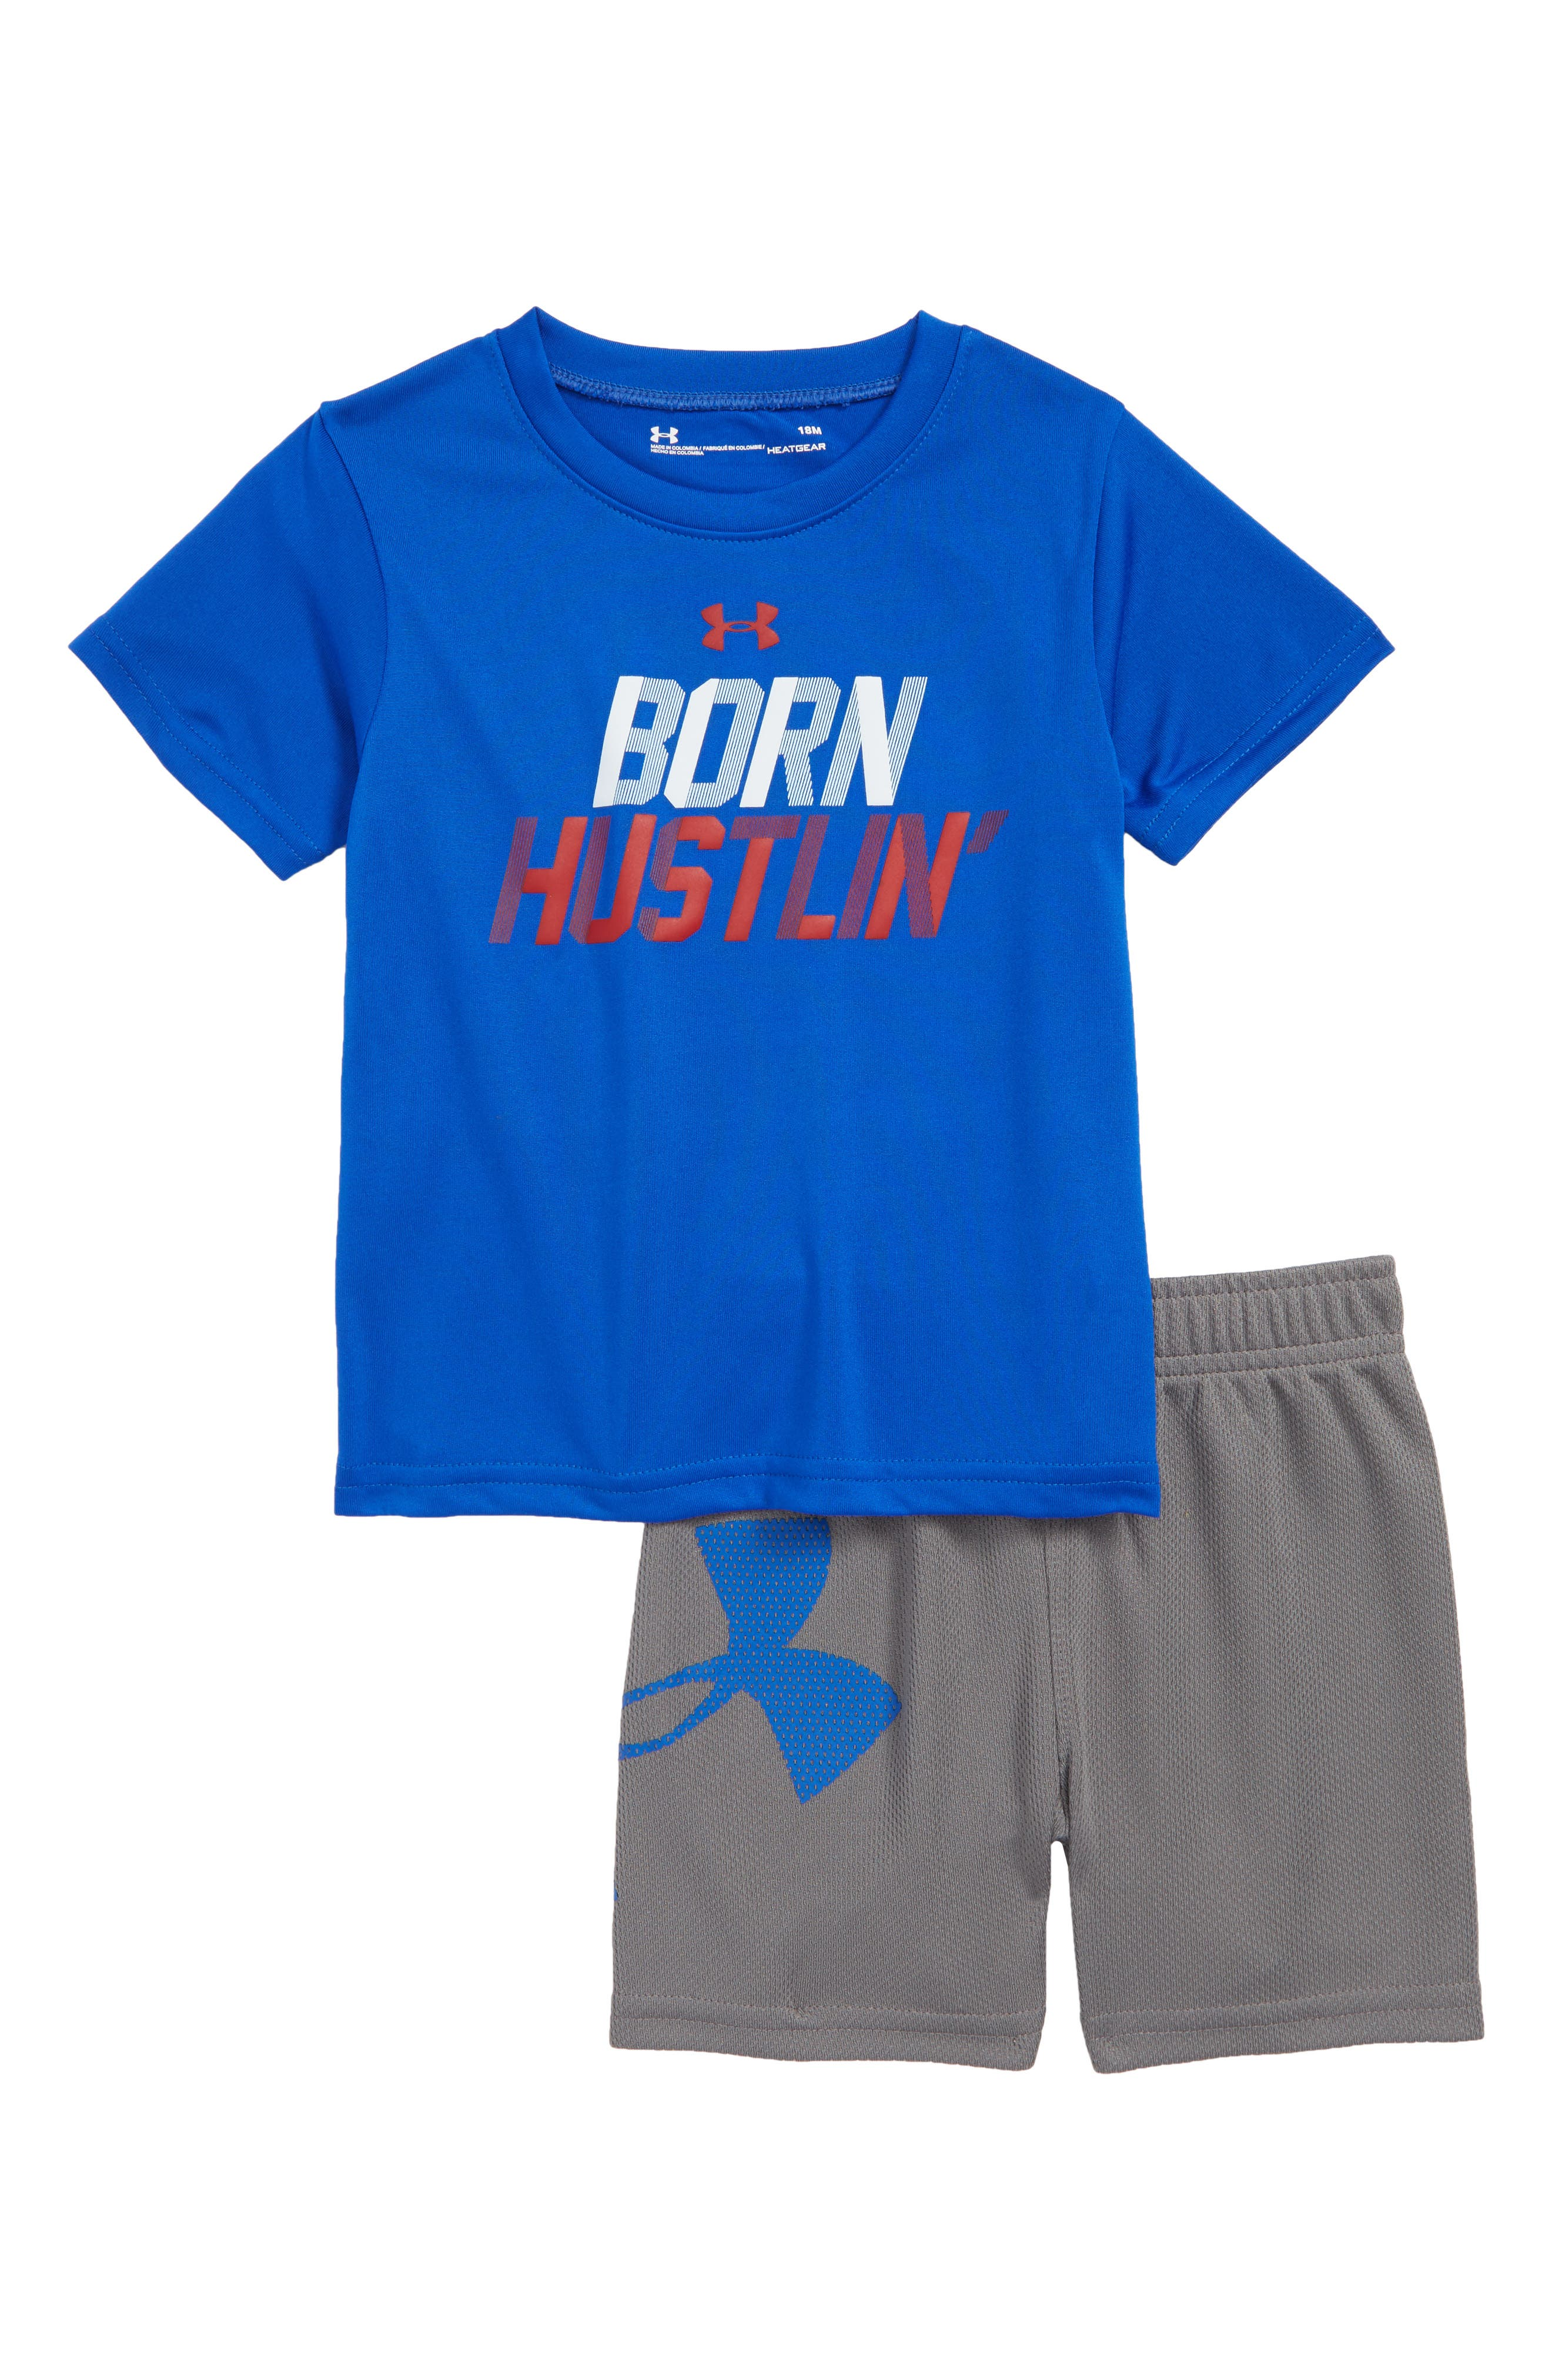 Born Hustlin T-Shirt & Shorts,                         Main,                         color, 420